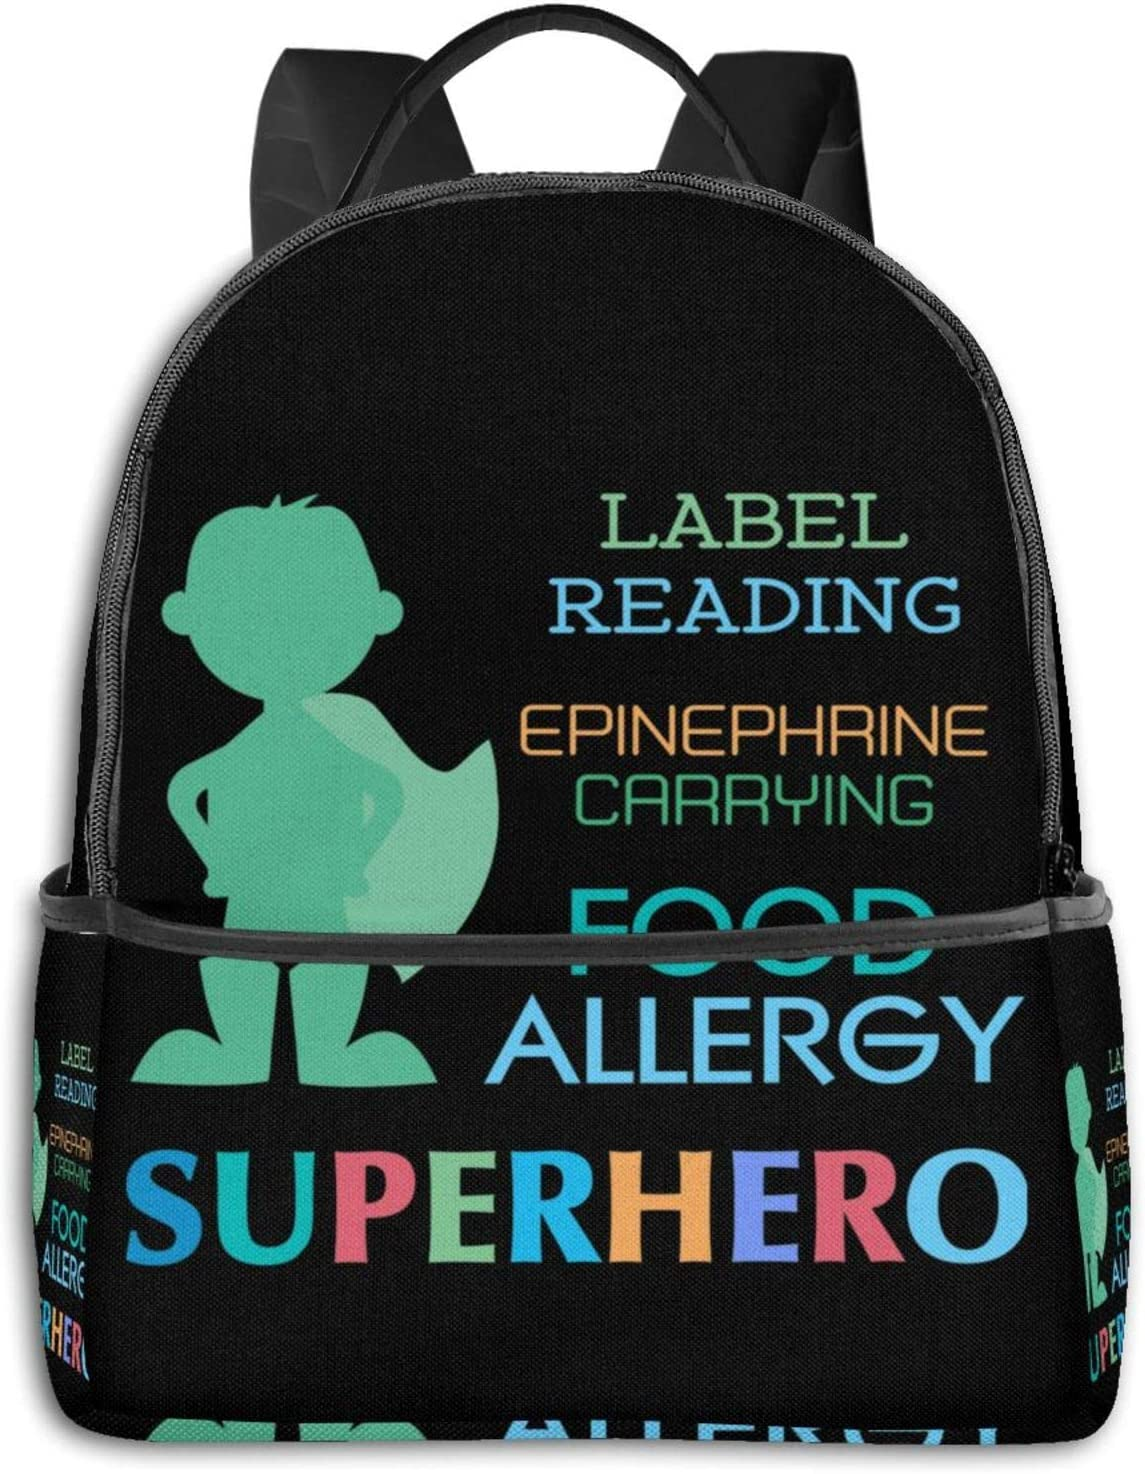 Kids Food Allergy Boy Silhouette Pullover Hoodie Student School Bag School Cycling Leisure Travel Camping Outdoor Backpack